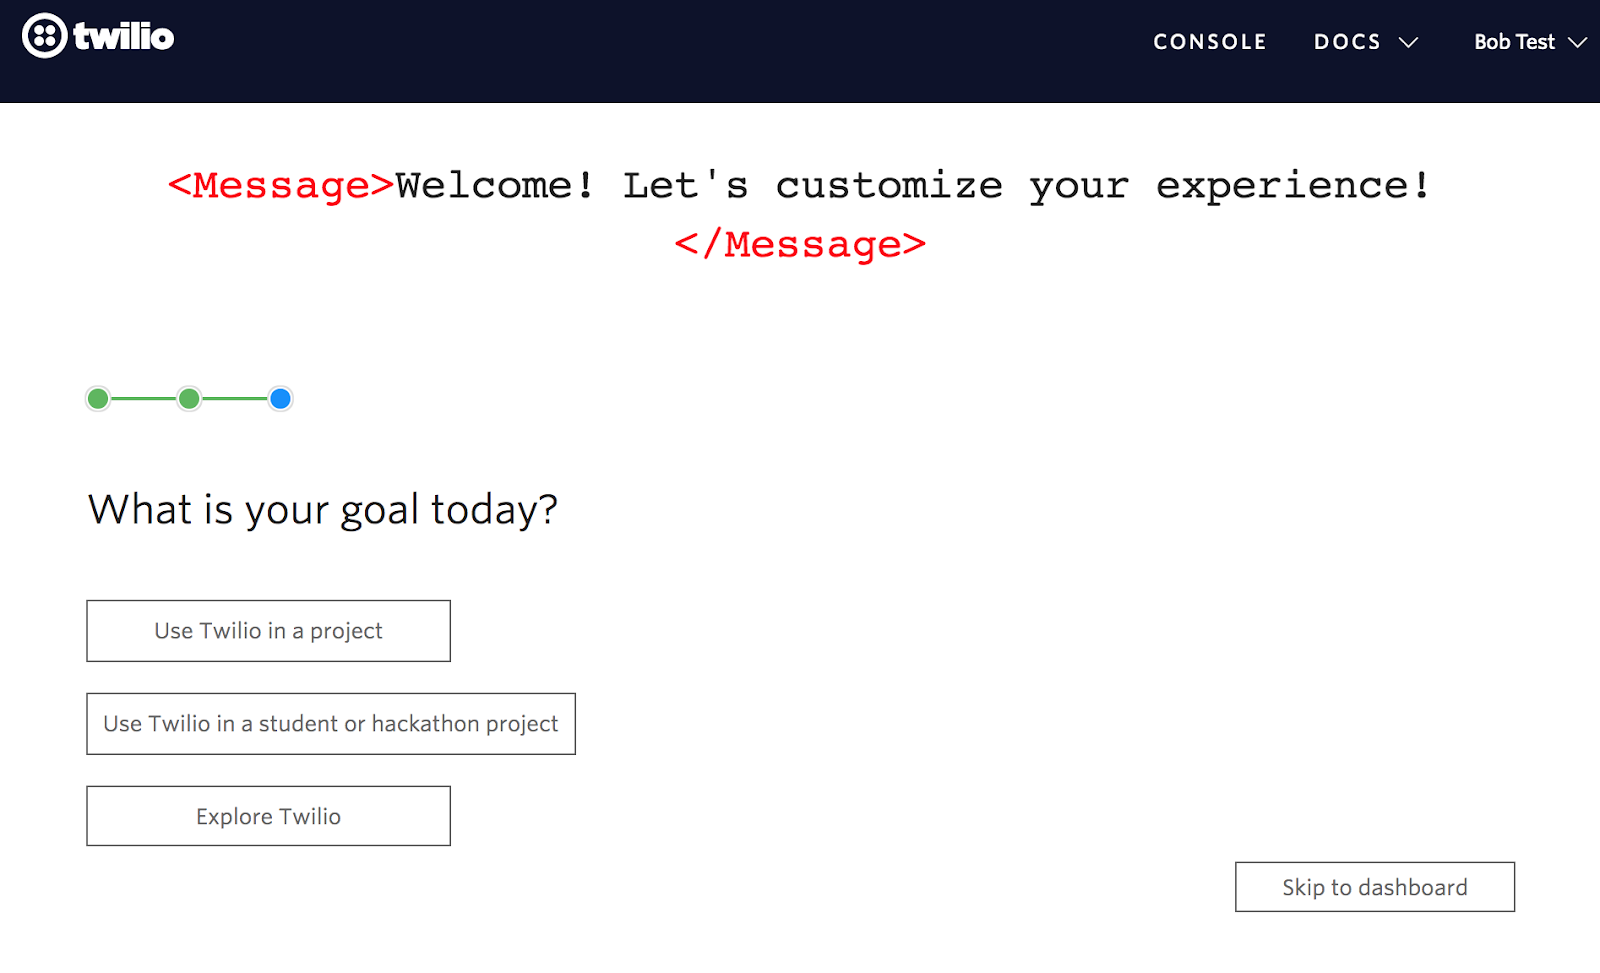 twilio user onboarding personalization question 3